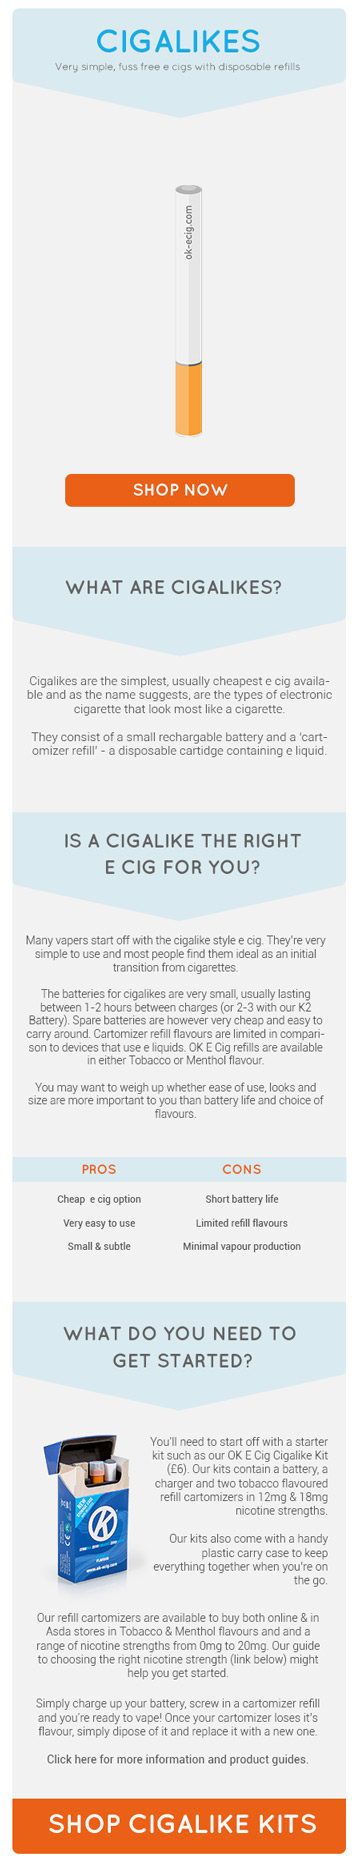 Different types of electronic cigarette - cigalikes description and image